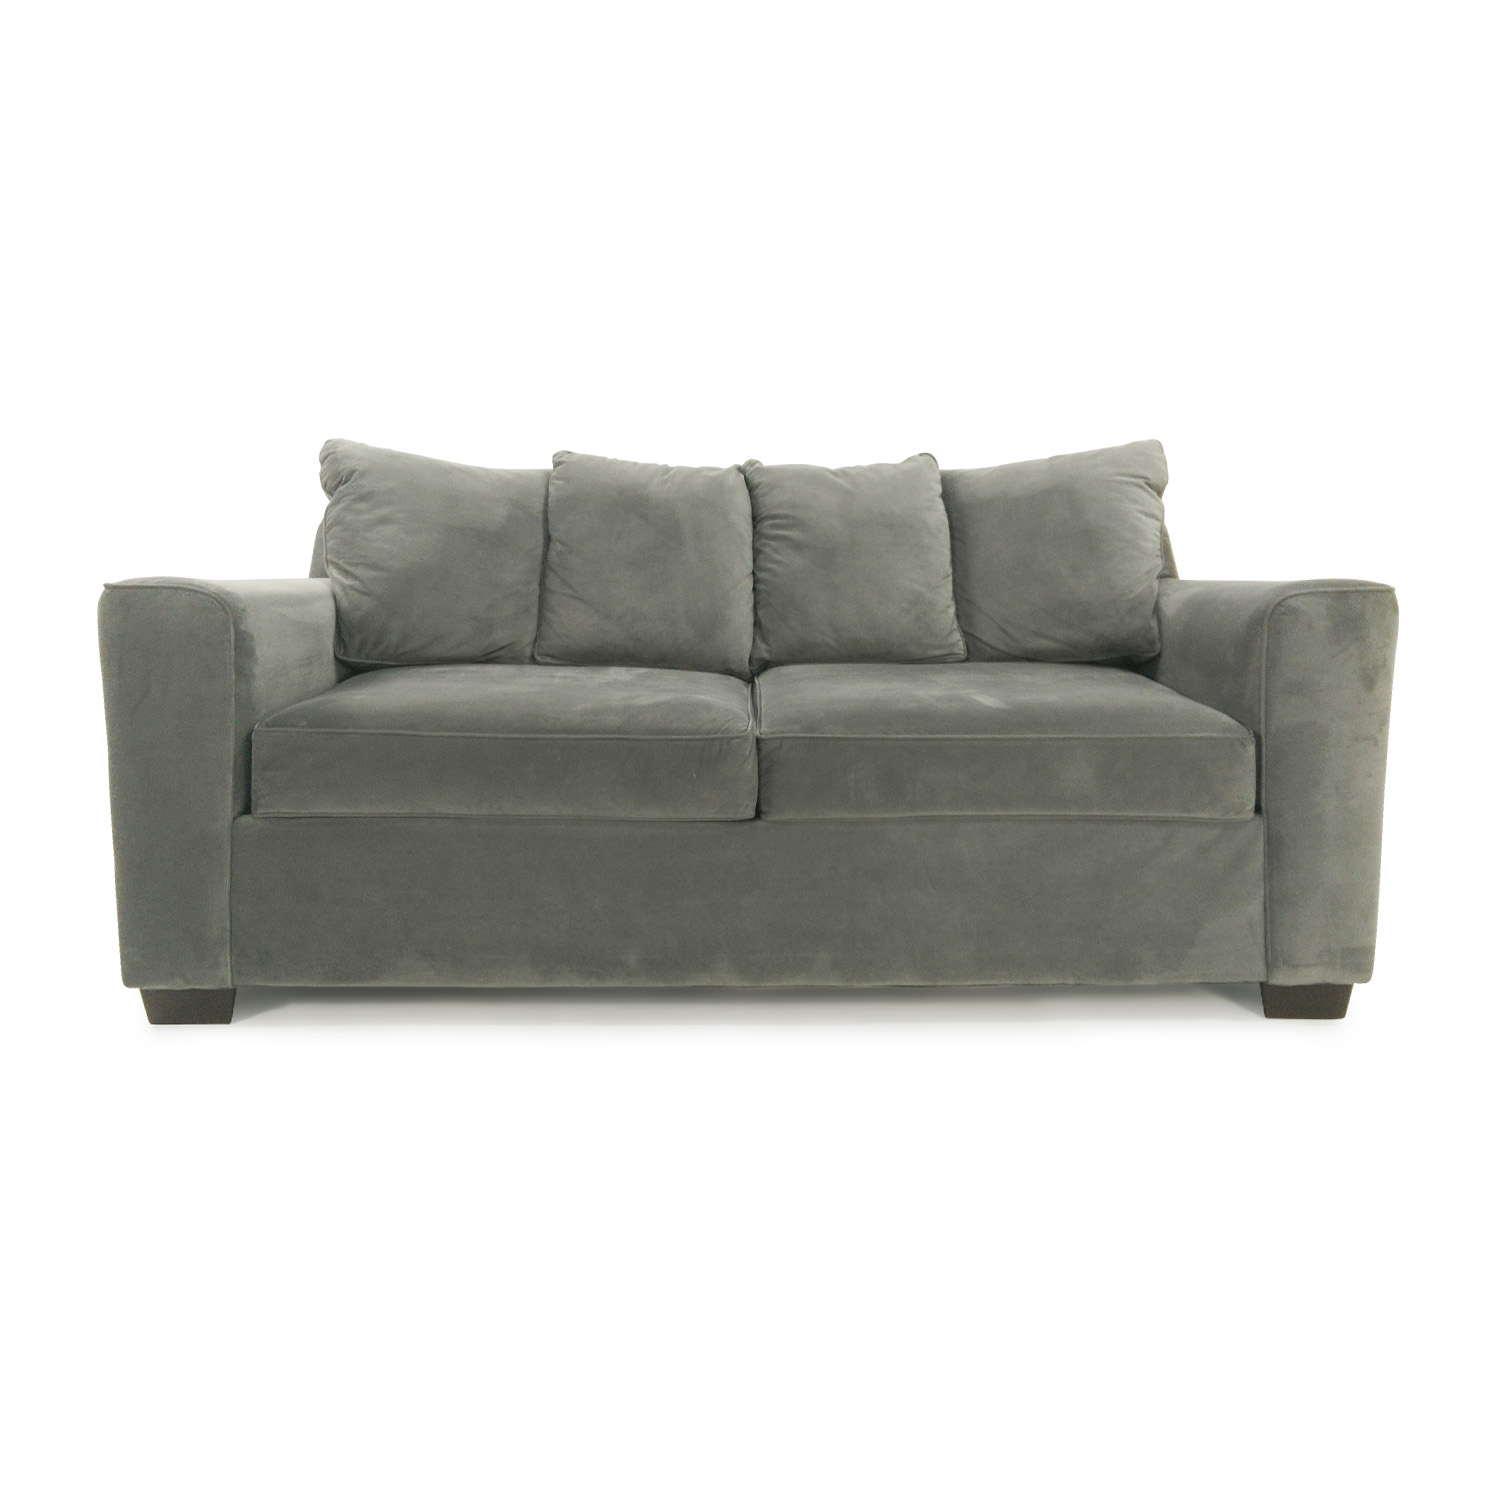 Shop Microfiber Second Hand Furniture